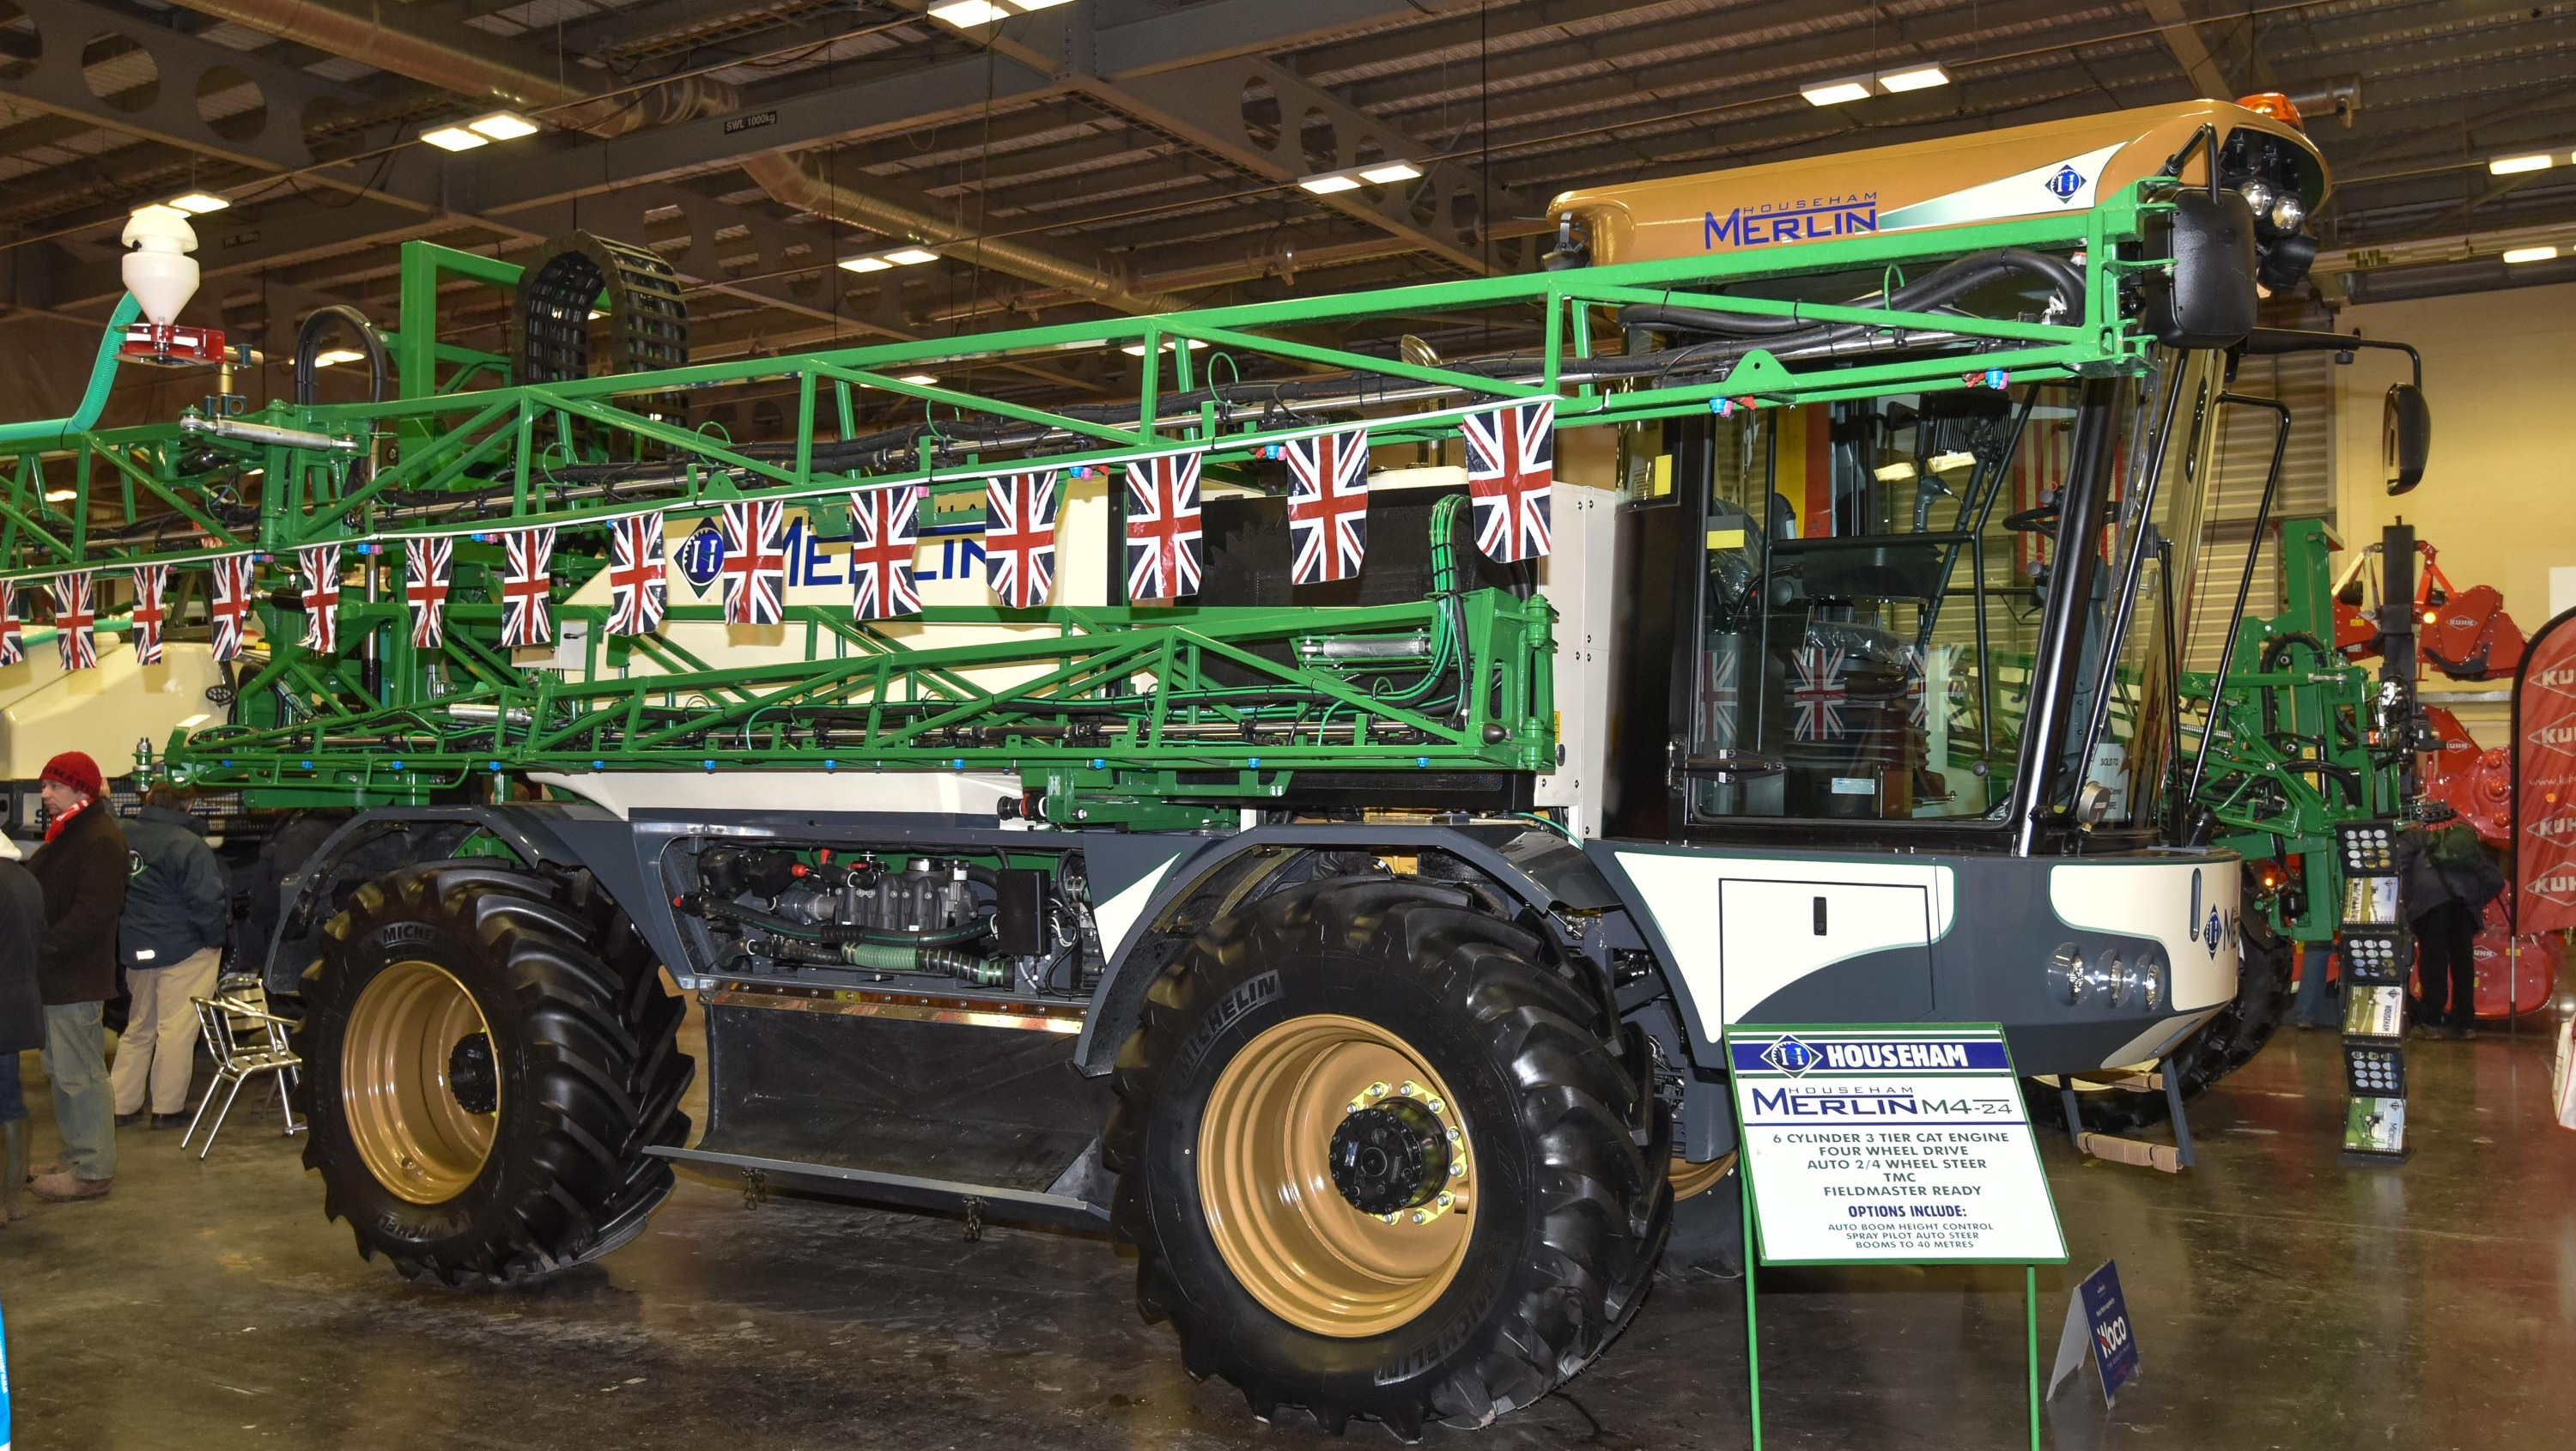 Househam's 100th Merlin sprayer